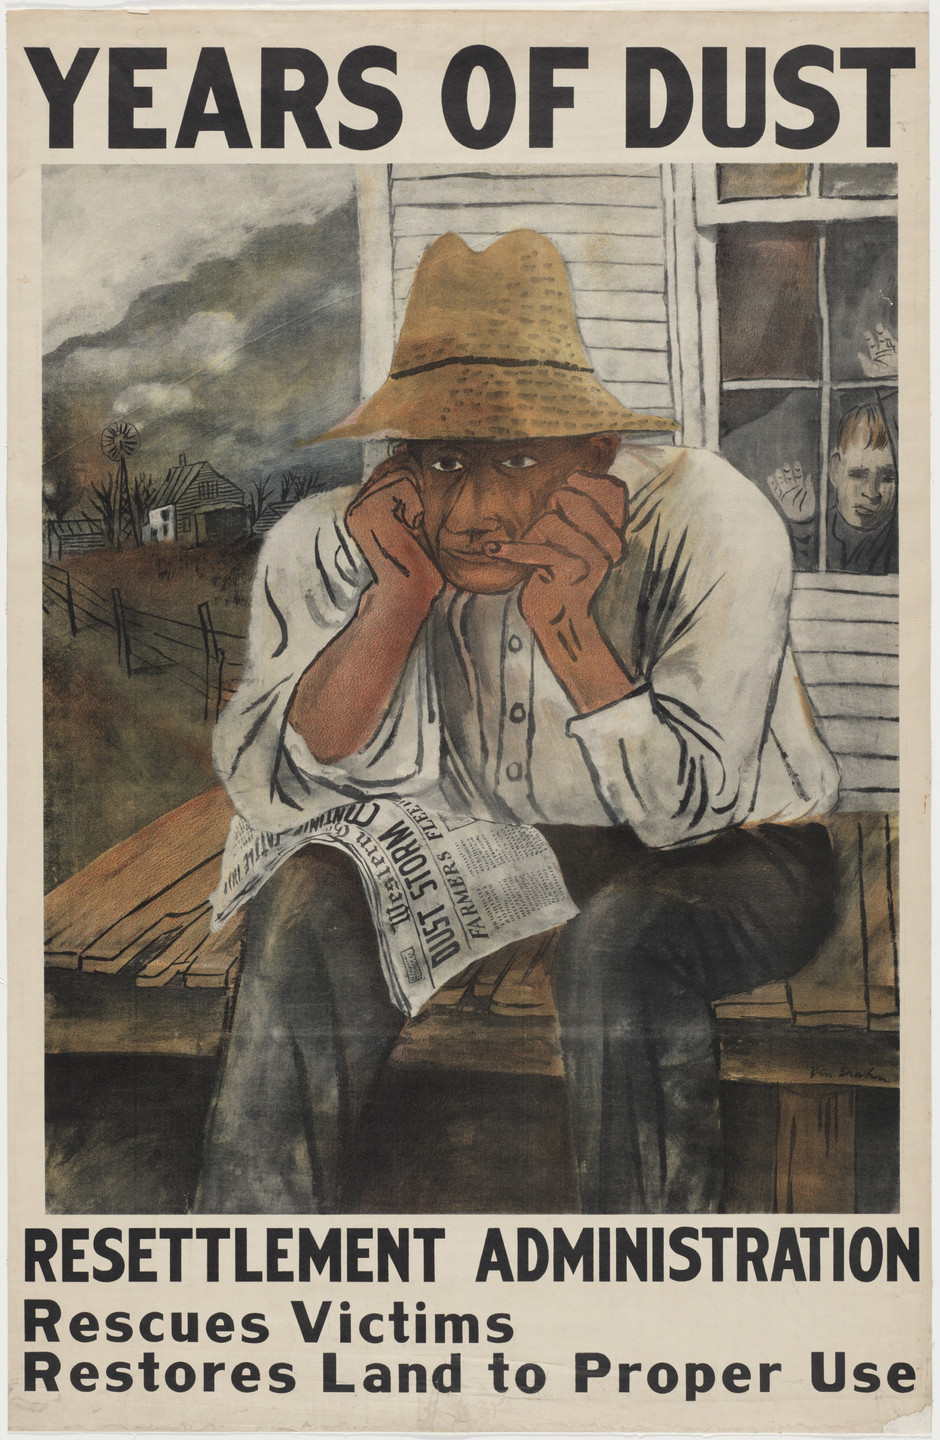 Ben Shahn. Years of Dust, Resettlement Administration, Rescues Victims, Restores Land to Proper Use. 1937